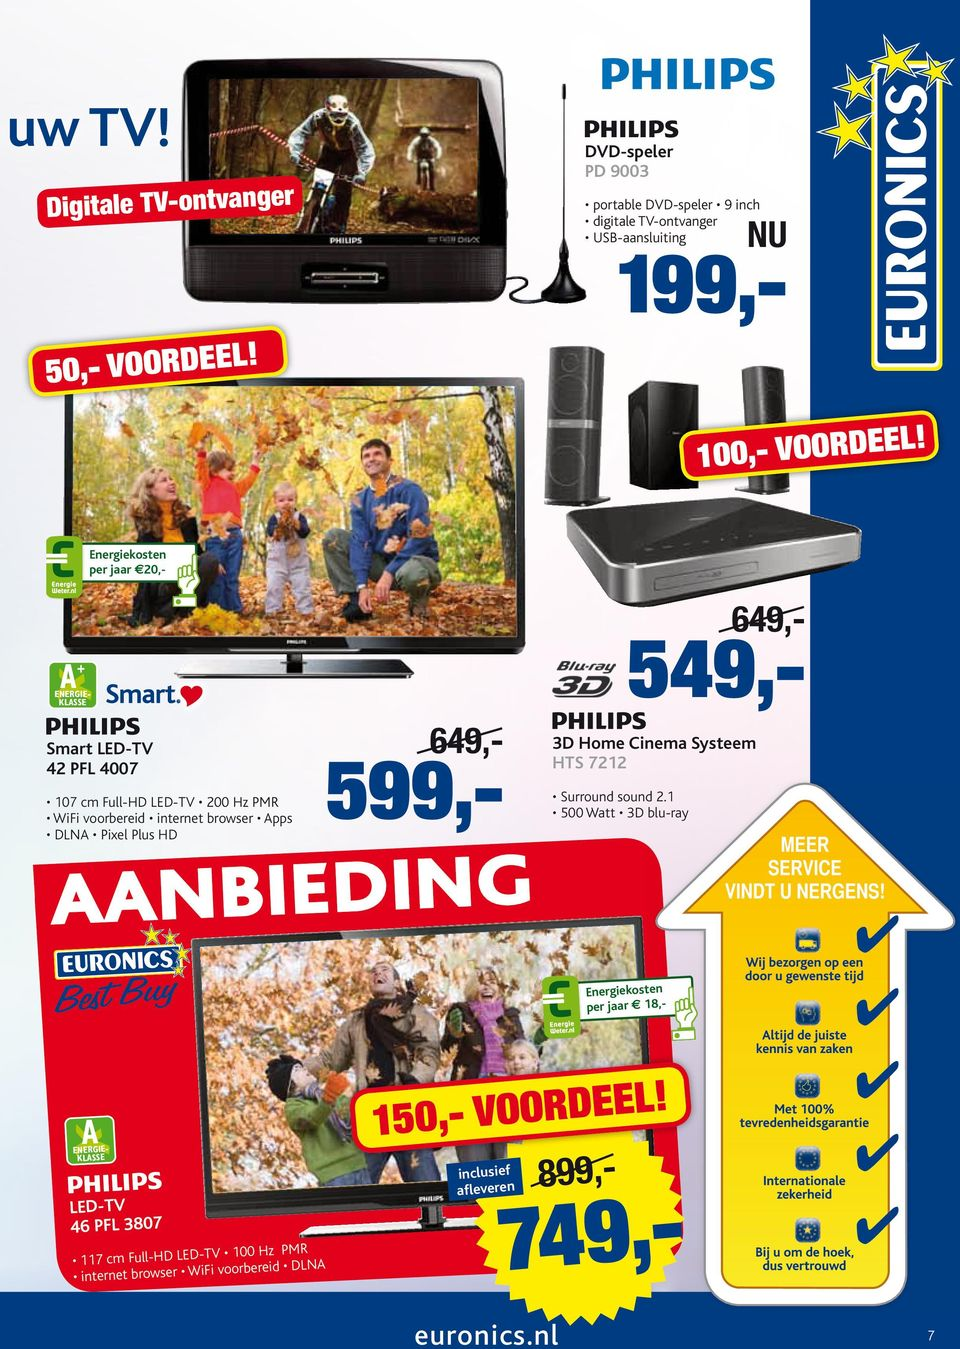 voorbereid internet browser pps DLN Pixel Plus HD 649, 599,- 3D Home Cinema Systeem HTS 7212 Surround sound 2.